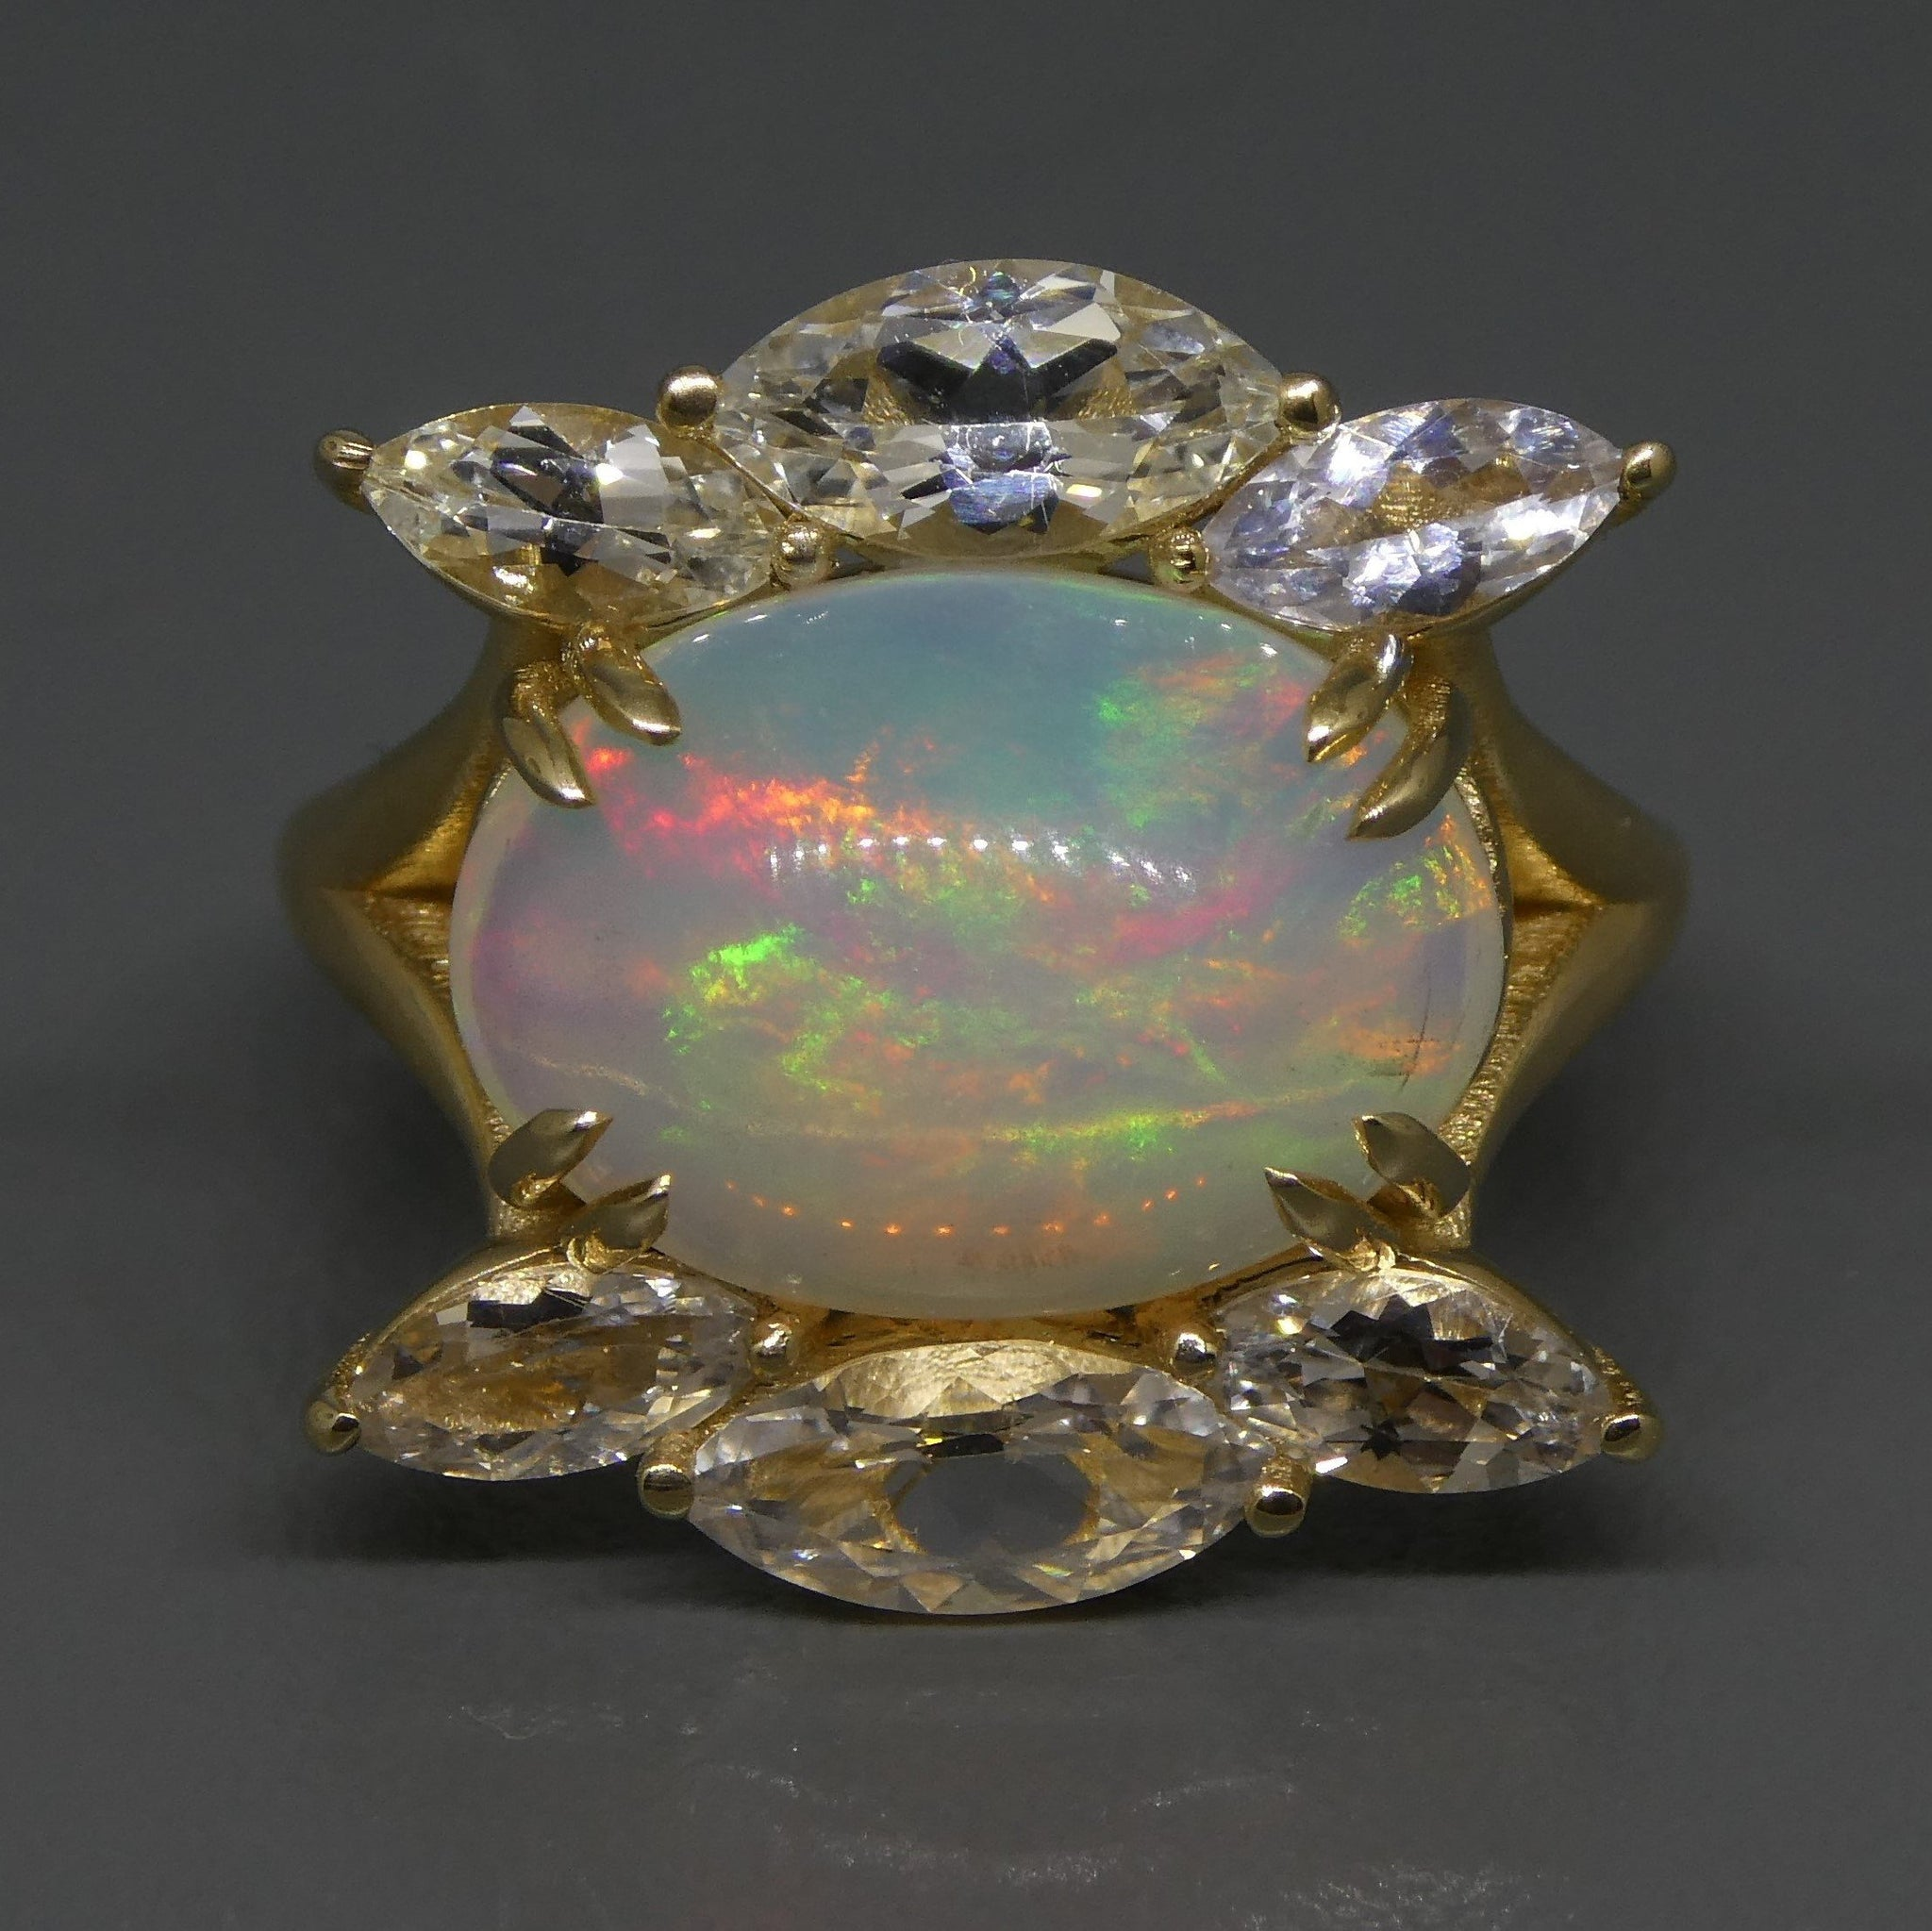 3.78ct Opal & White Sapphire Ring in 14kt Yellow Gold